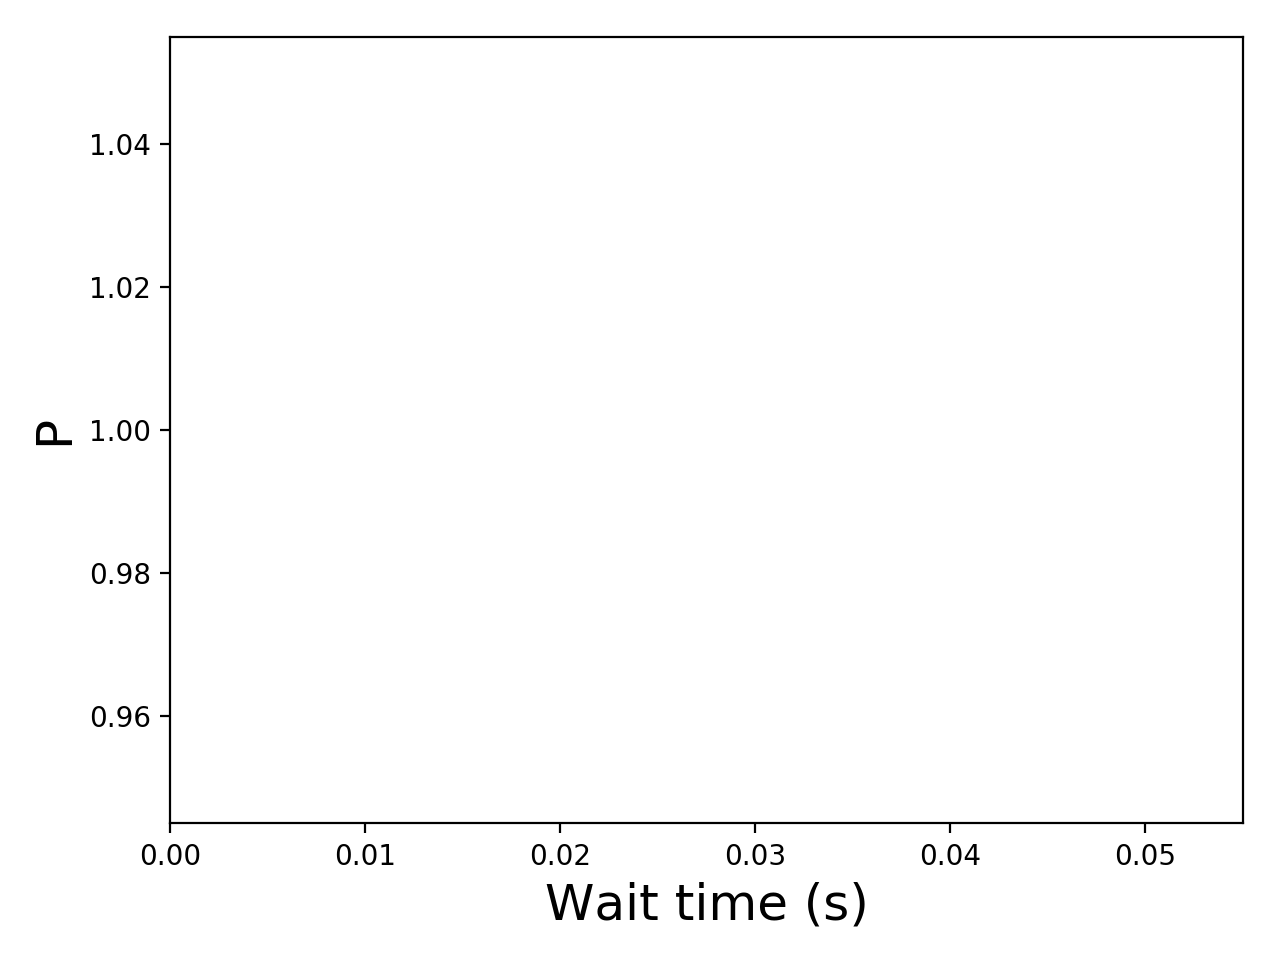 Task wait time CDF graph for the askalon-new_ee40 trace.